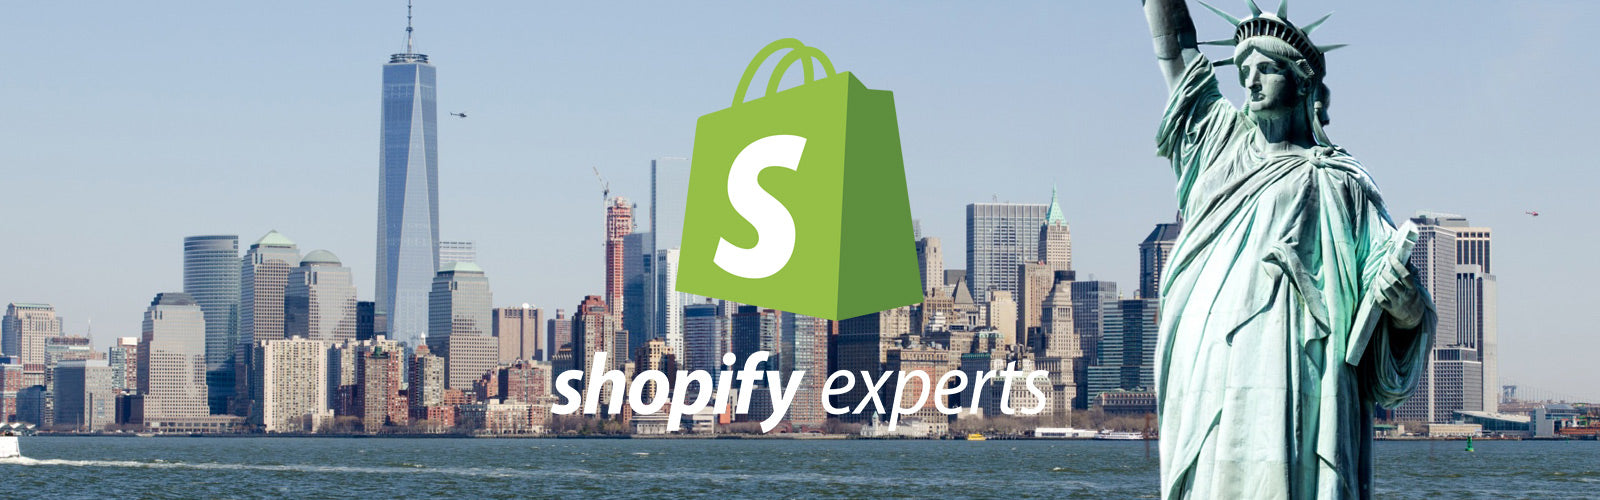 Realm - Shopify Experts New York City Shopify Experts, Shopify Expert